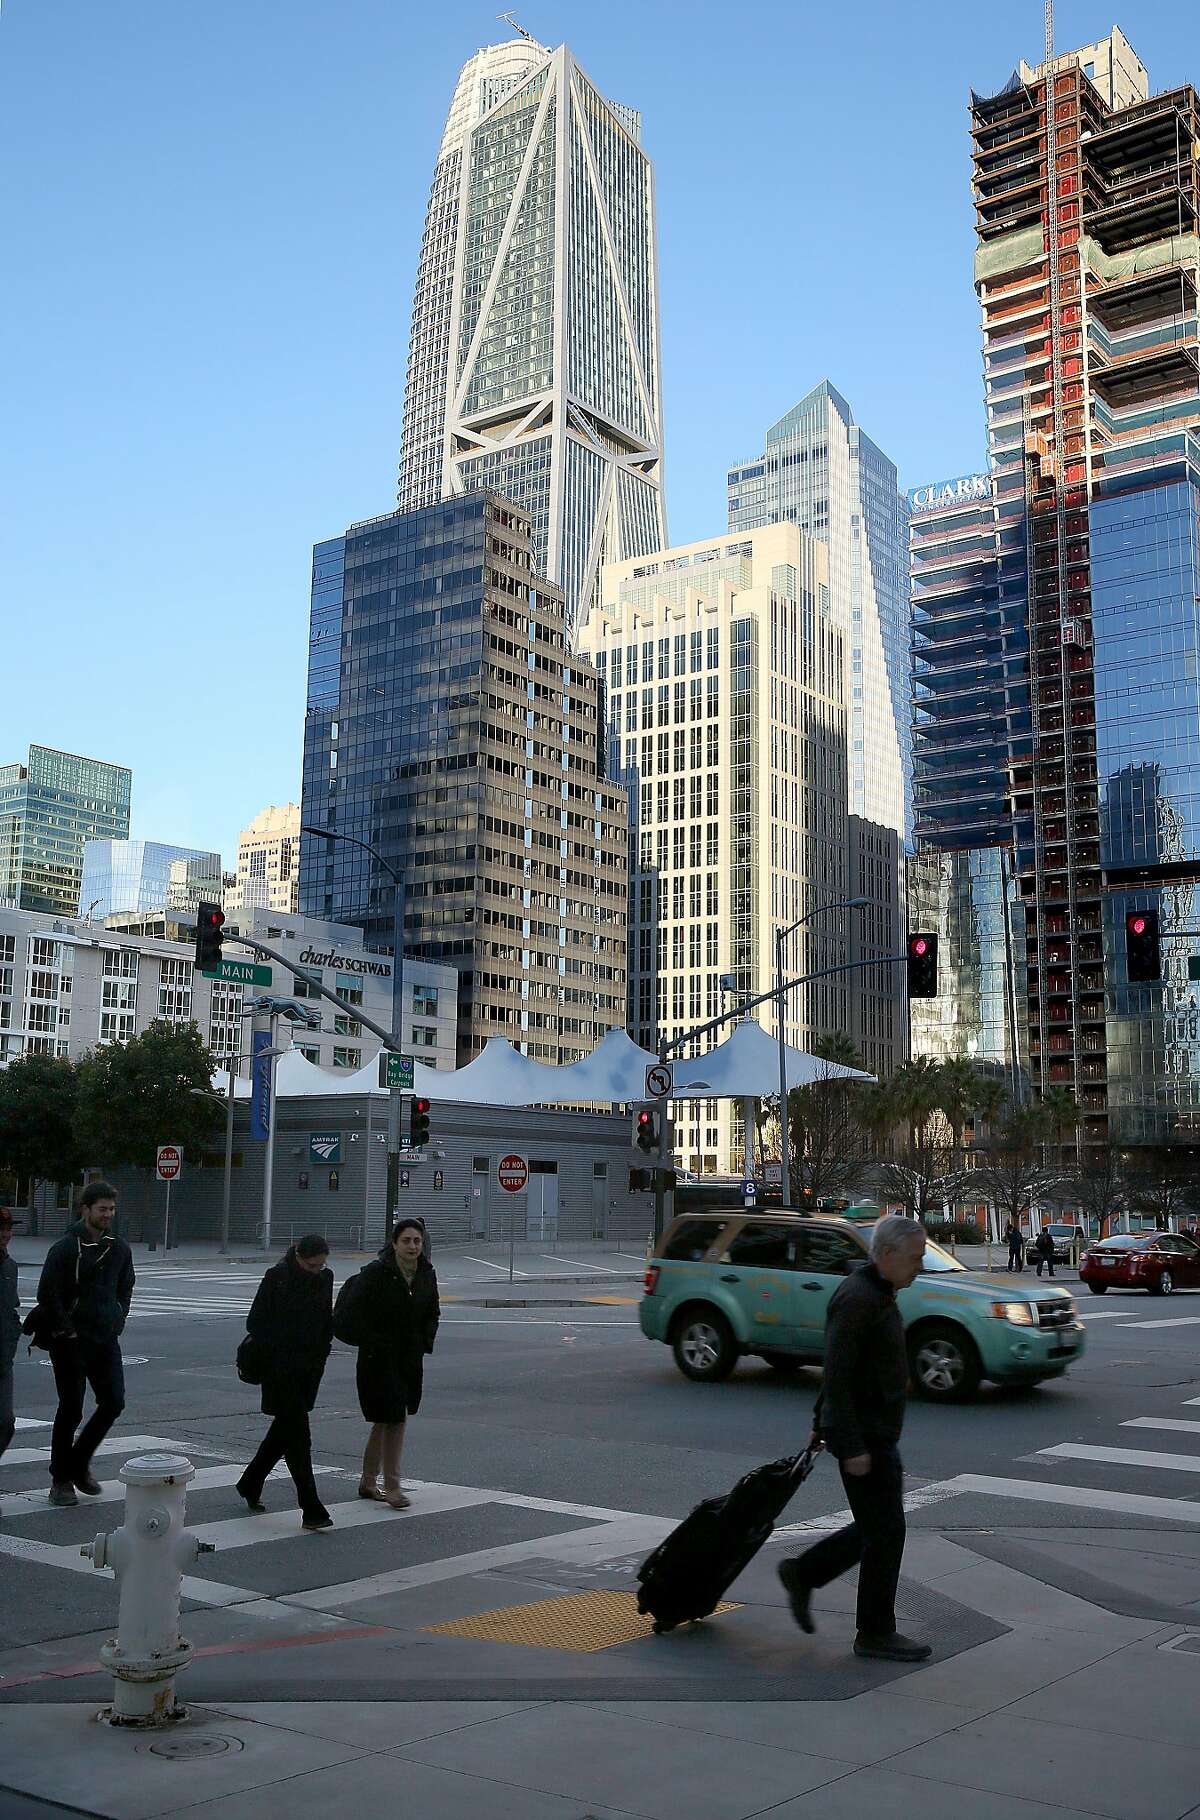 181 Fremont Street (tallest) on Monday, February 20, 2018, in San Francisco, Ca.